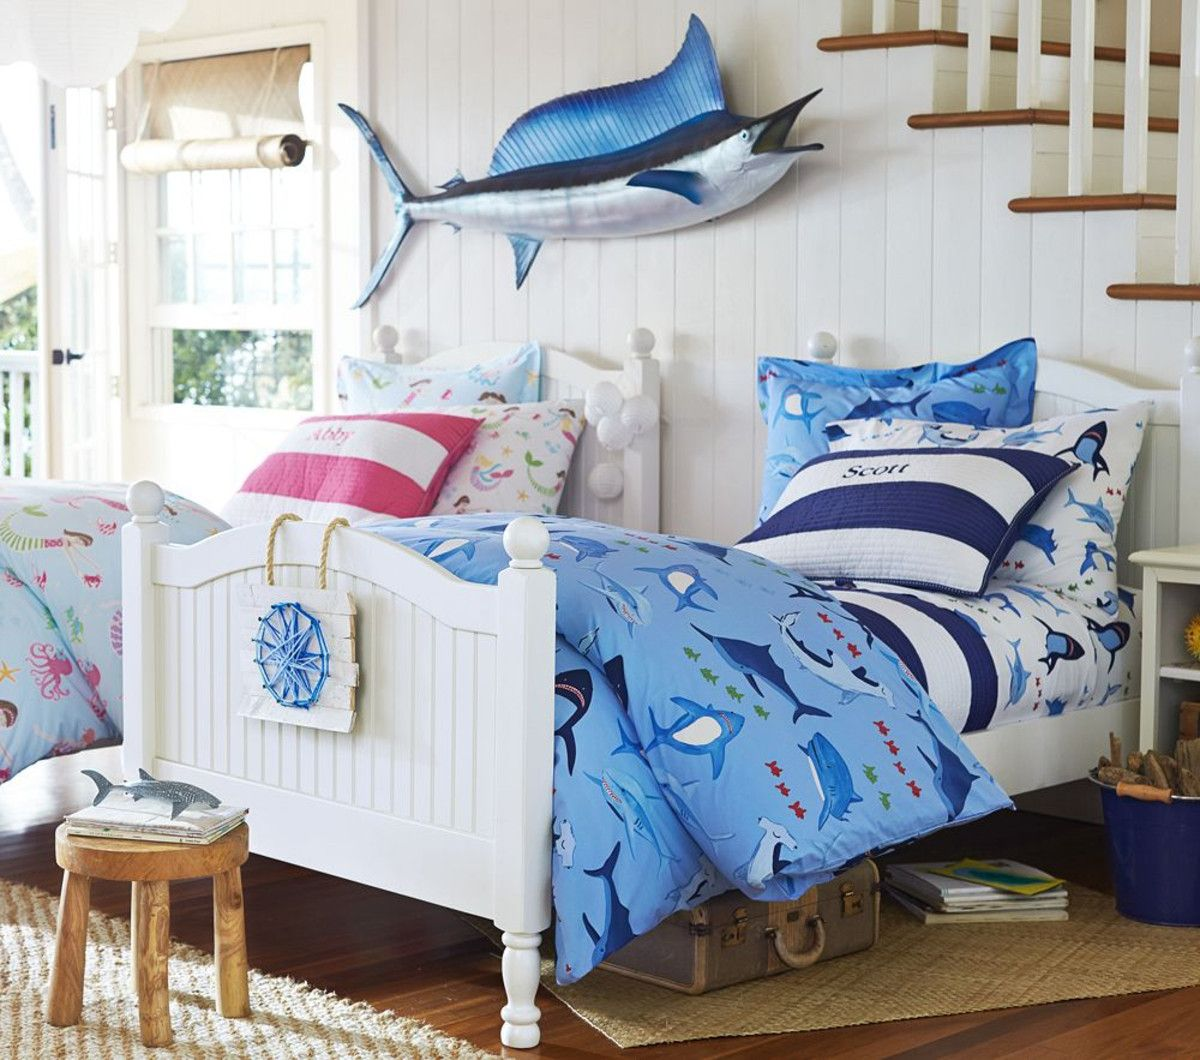 Catalina Bed | Pottery Barn Kids Australia